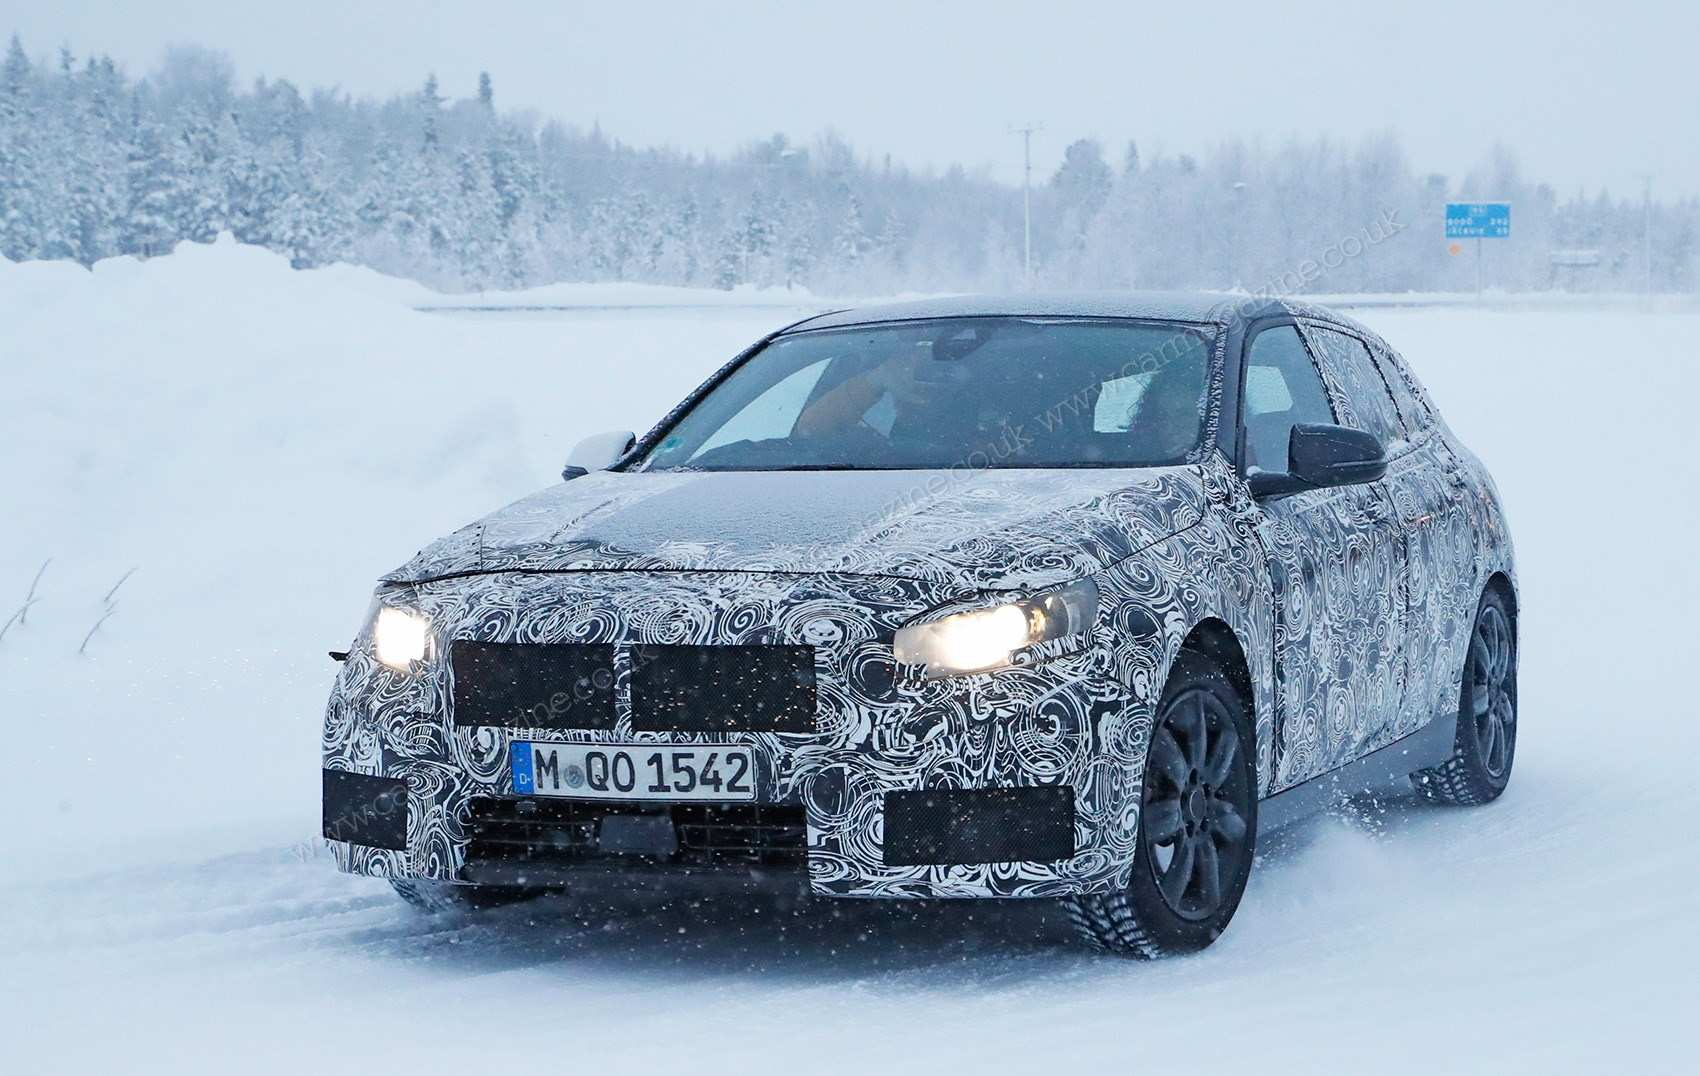 61 New Bmw One Series 2019 Interior Exterior And Review Ratings with Bmw One Series 2019 Interior Exterior And Review